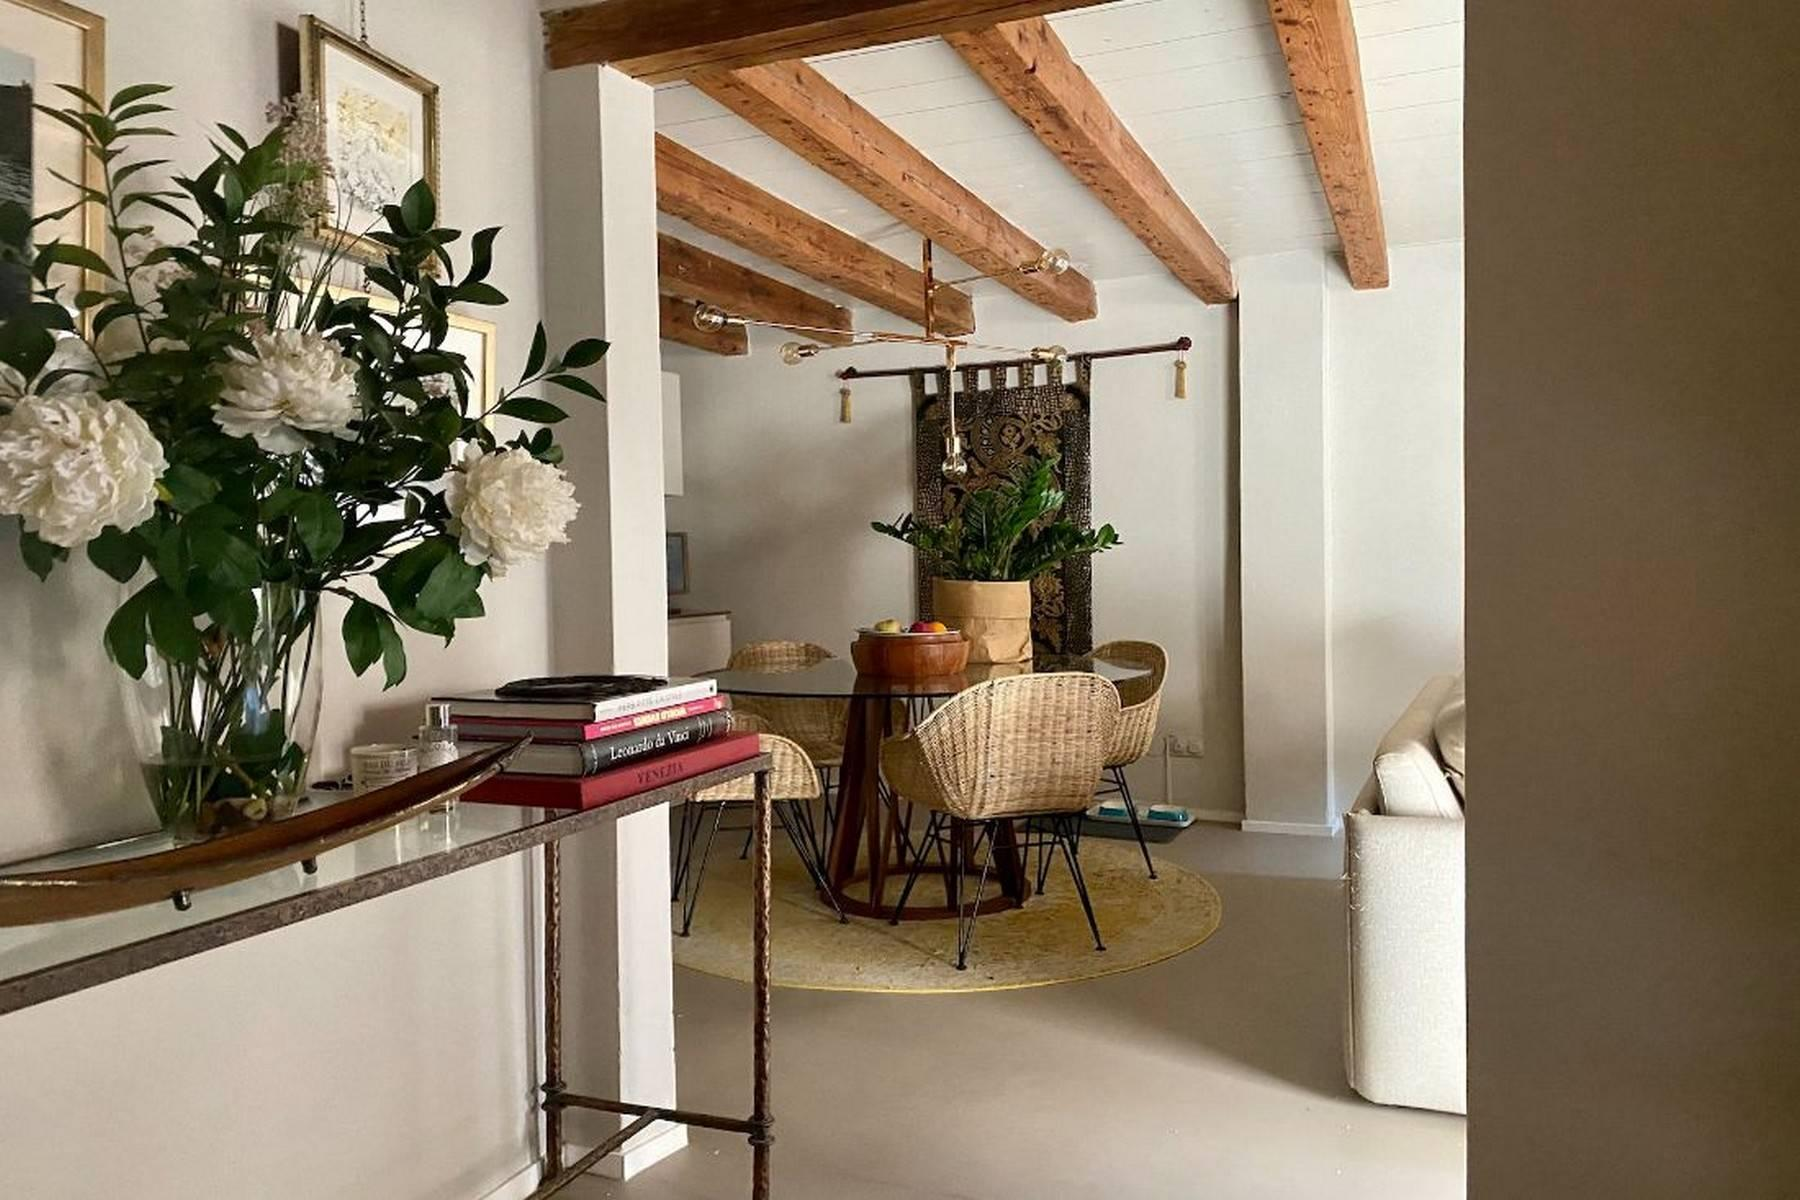 Castello design duplex with charming roof terrace - 3